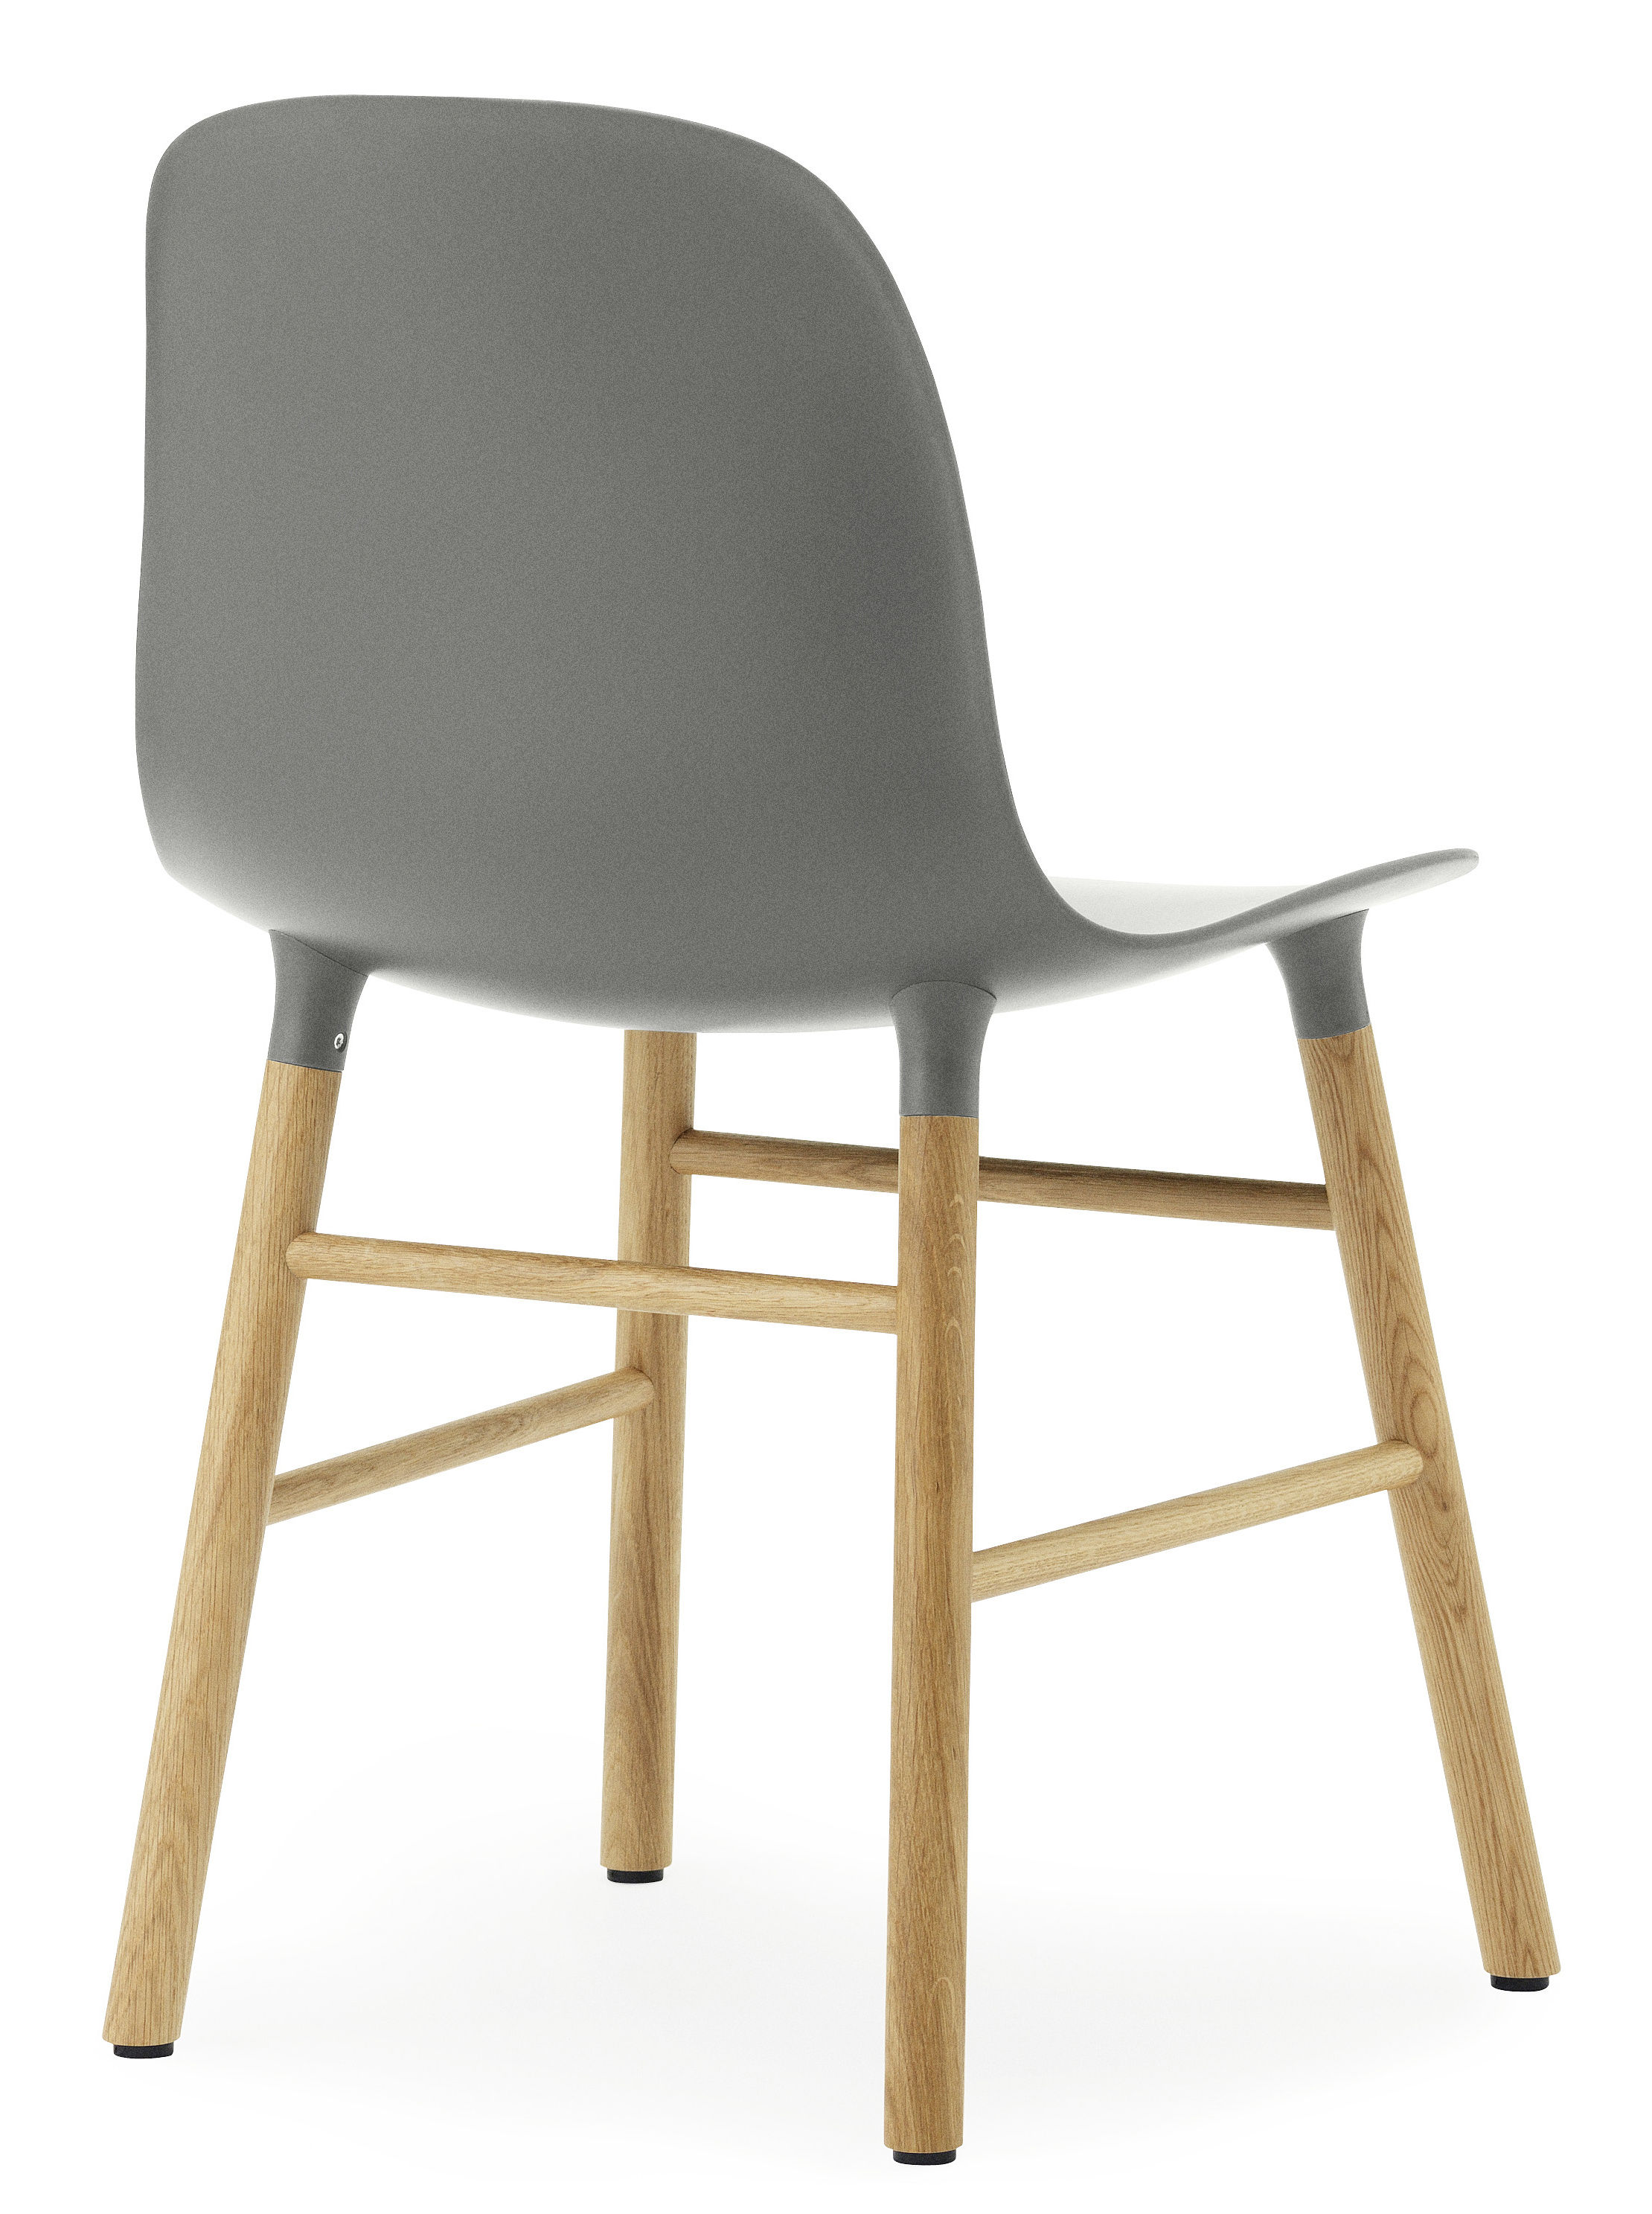 Chaise form pied ch ne gris ch ne normann copenhagen for Chaise 1 pied